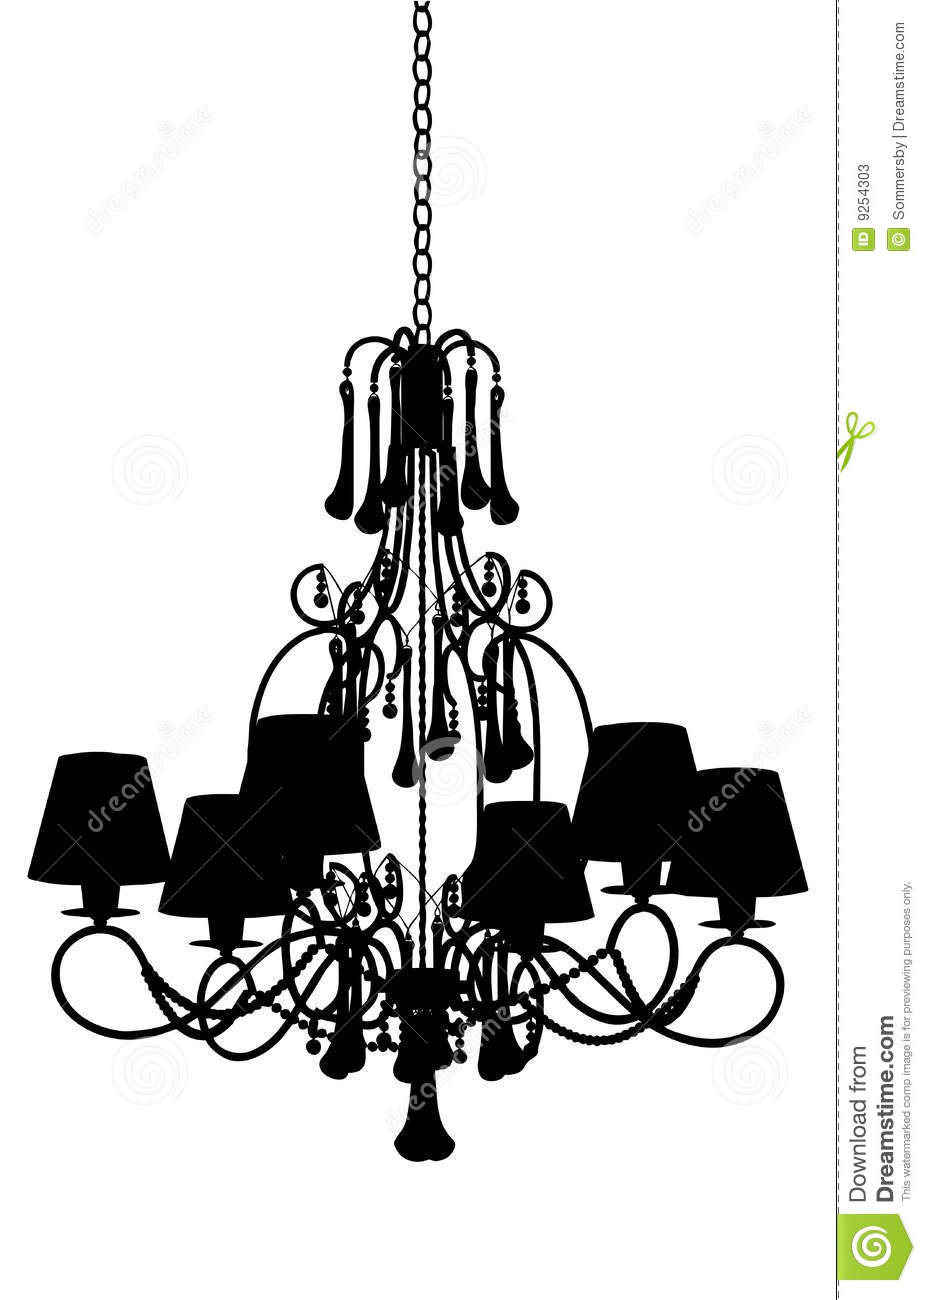 Silhouette Of Luxury Chandelier Stock Photos.